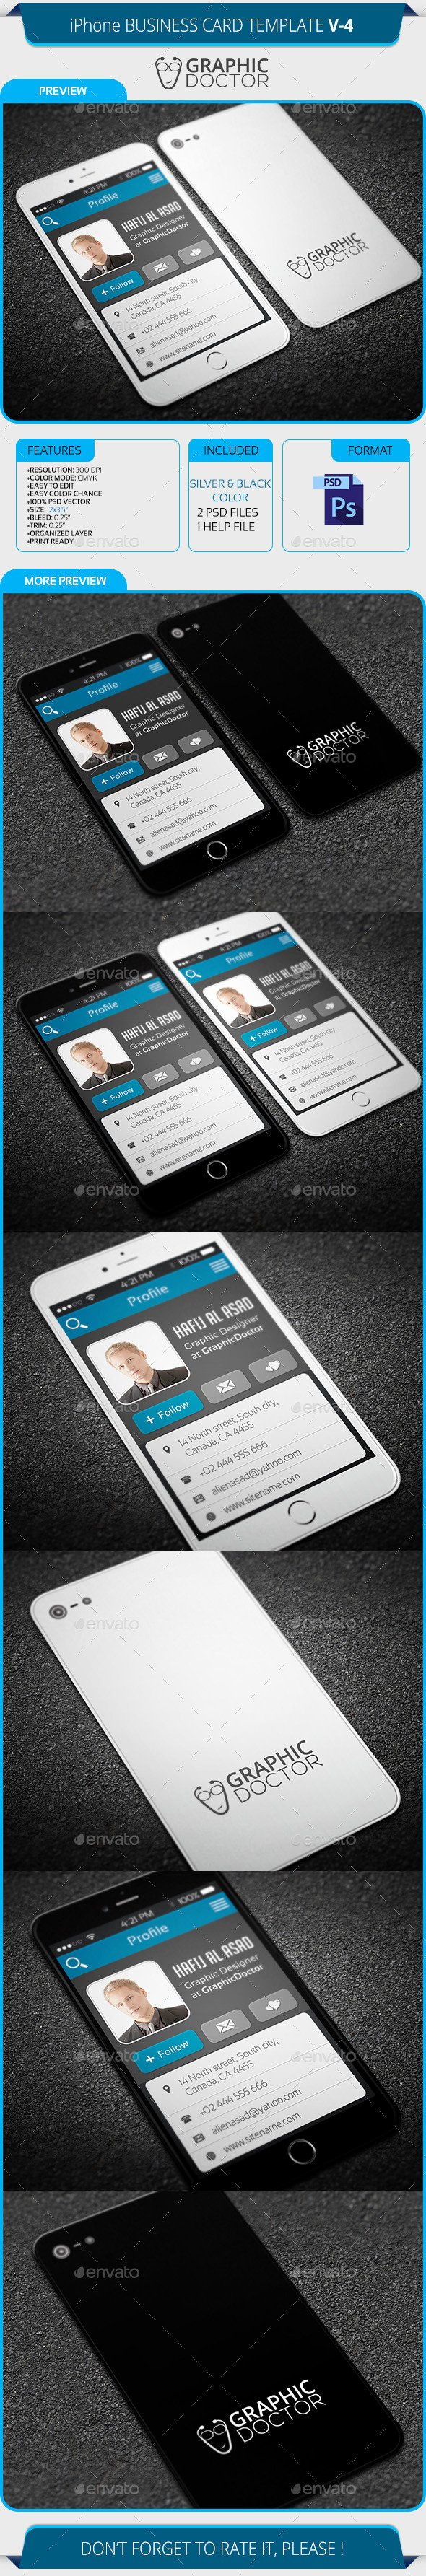 iPhone Business Card Template Fresh iPhone Business Card Template V 4 by Graphicdoctor